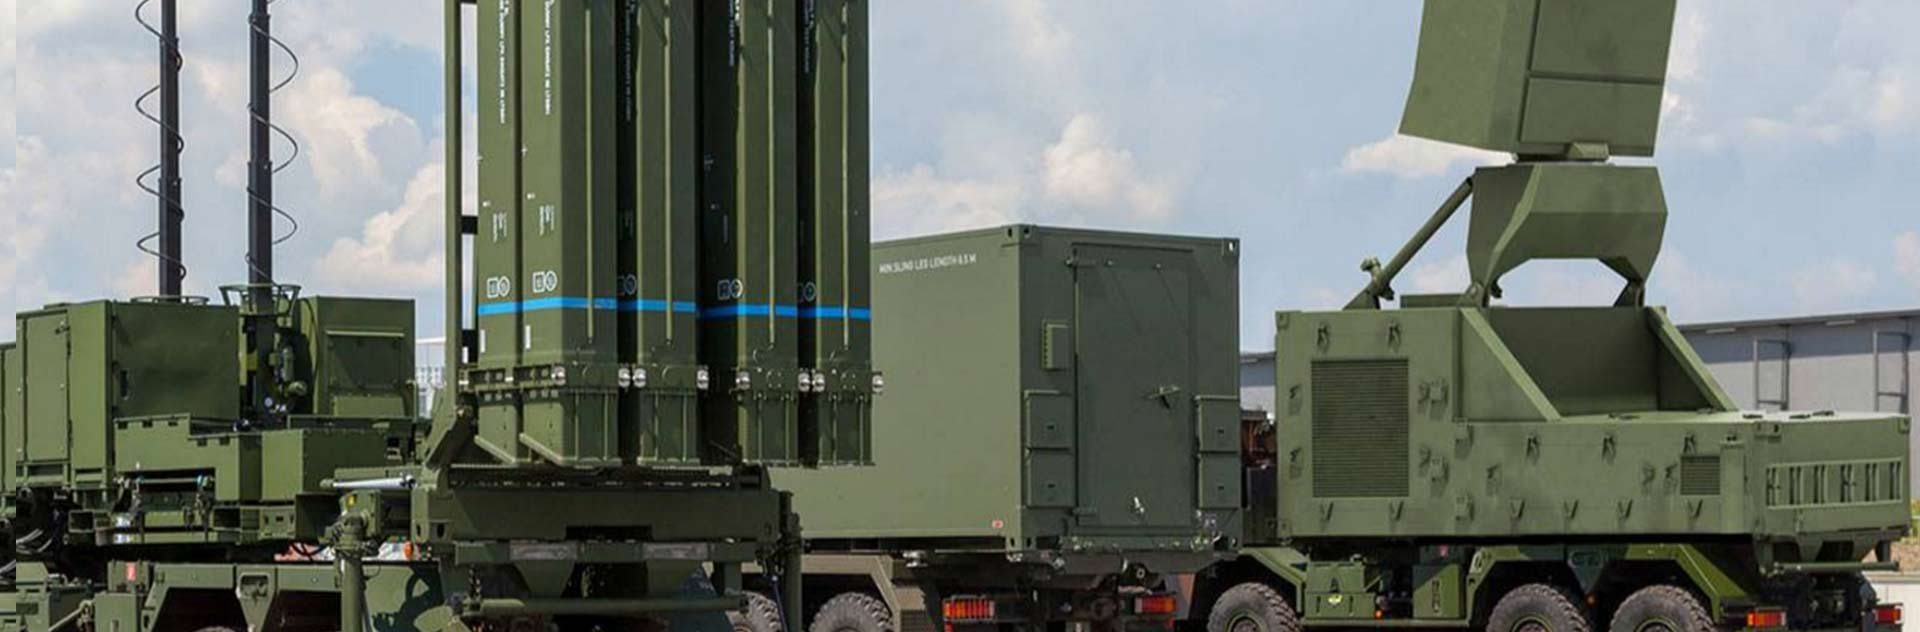 Fortion IBMS qualified command and control system at execution level